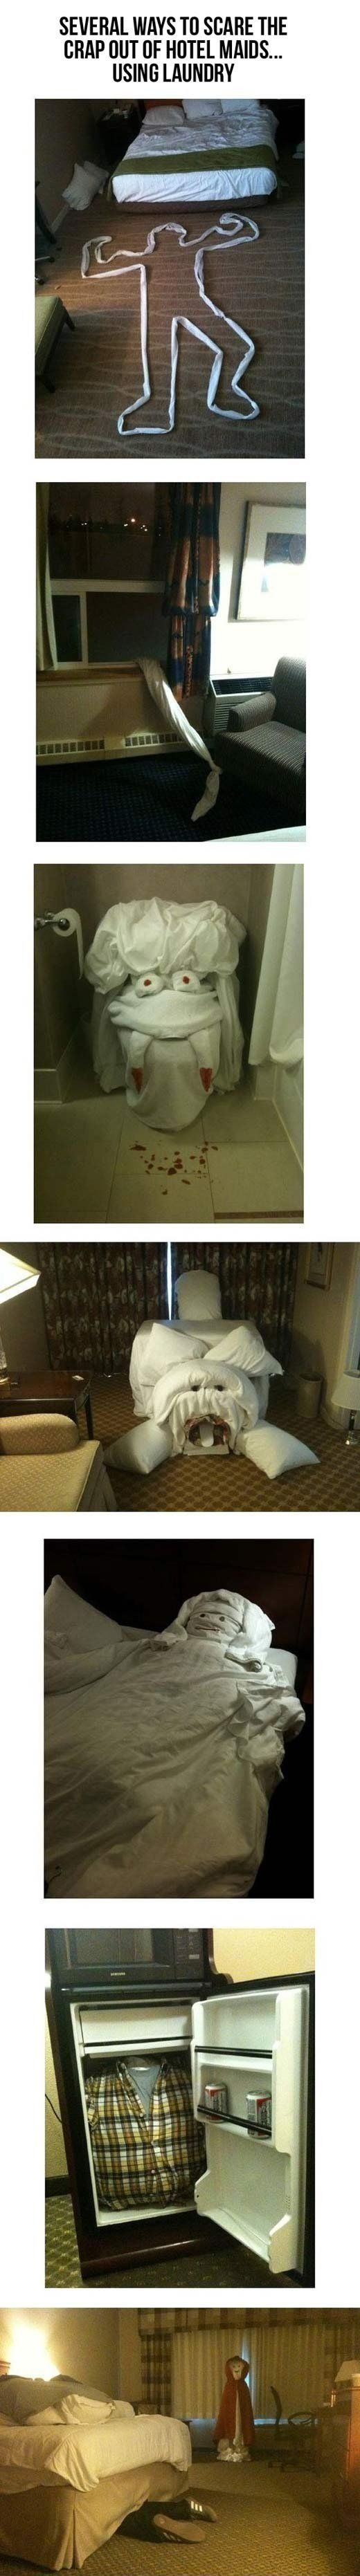 several ways to scare hotel maids.--- so awesome